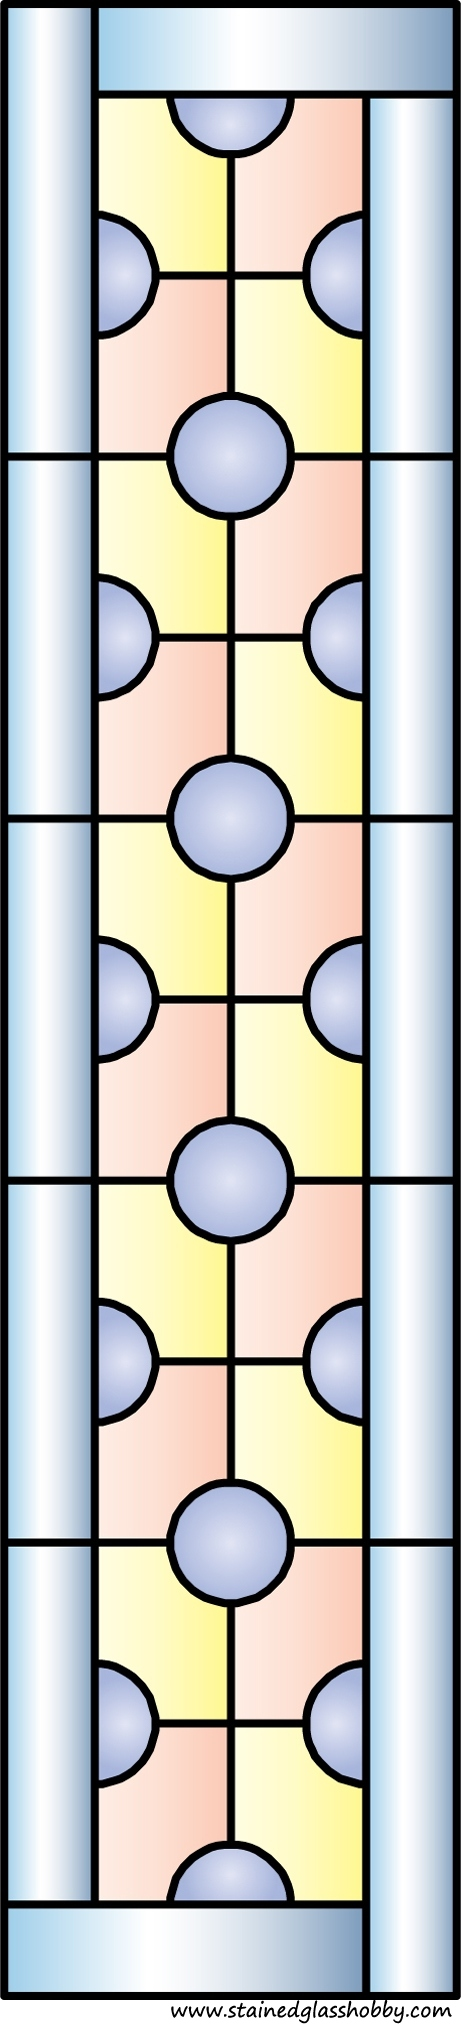 Rectangular panel for stained glass design 6